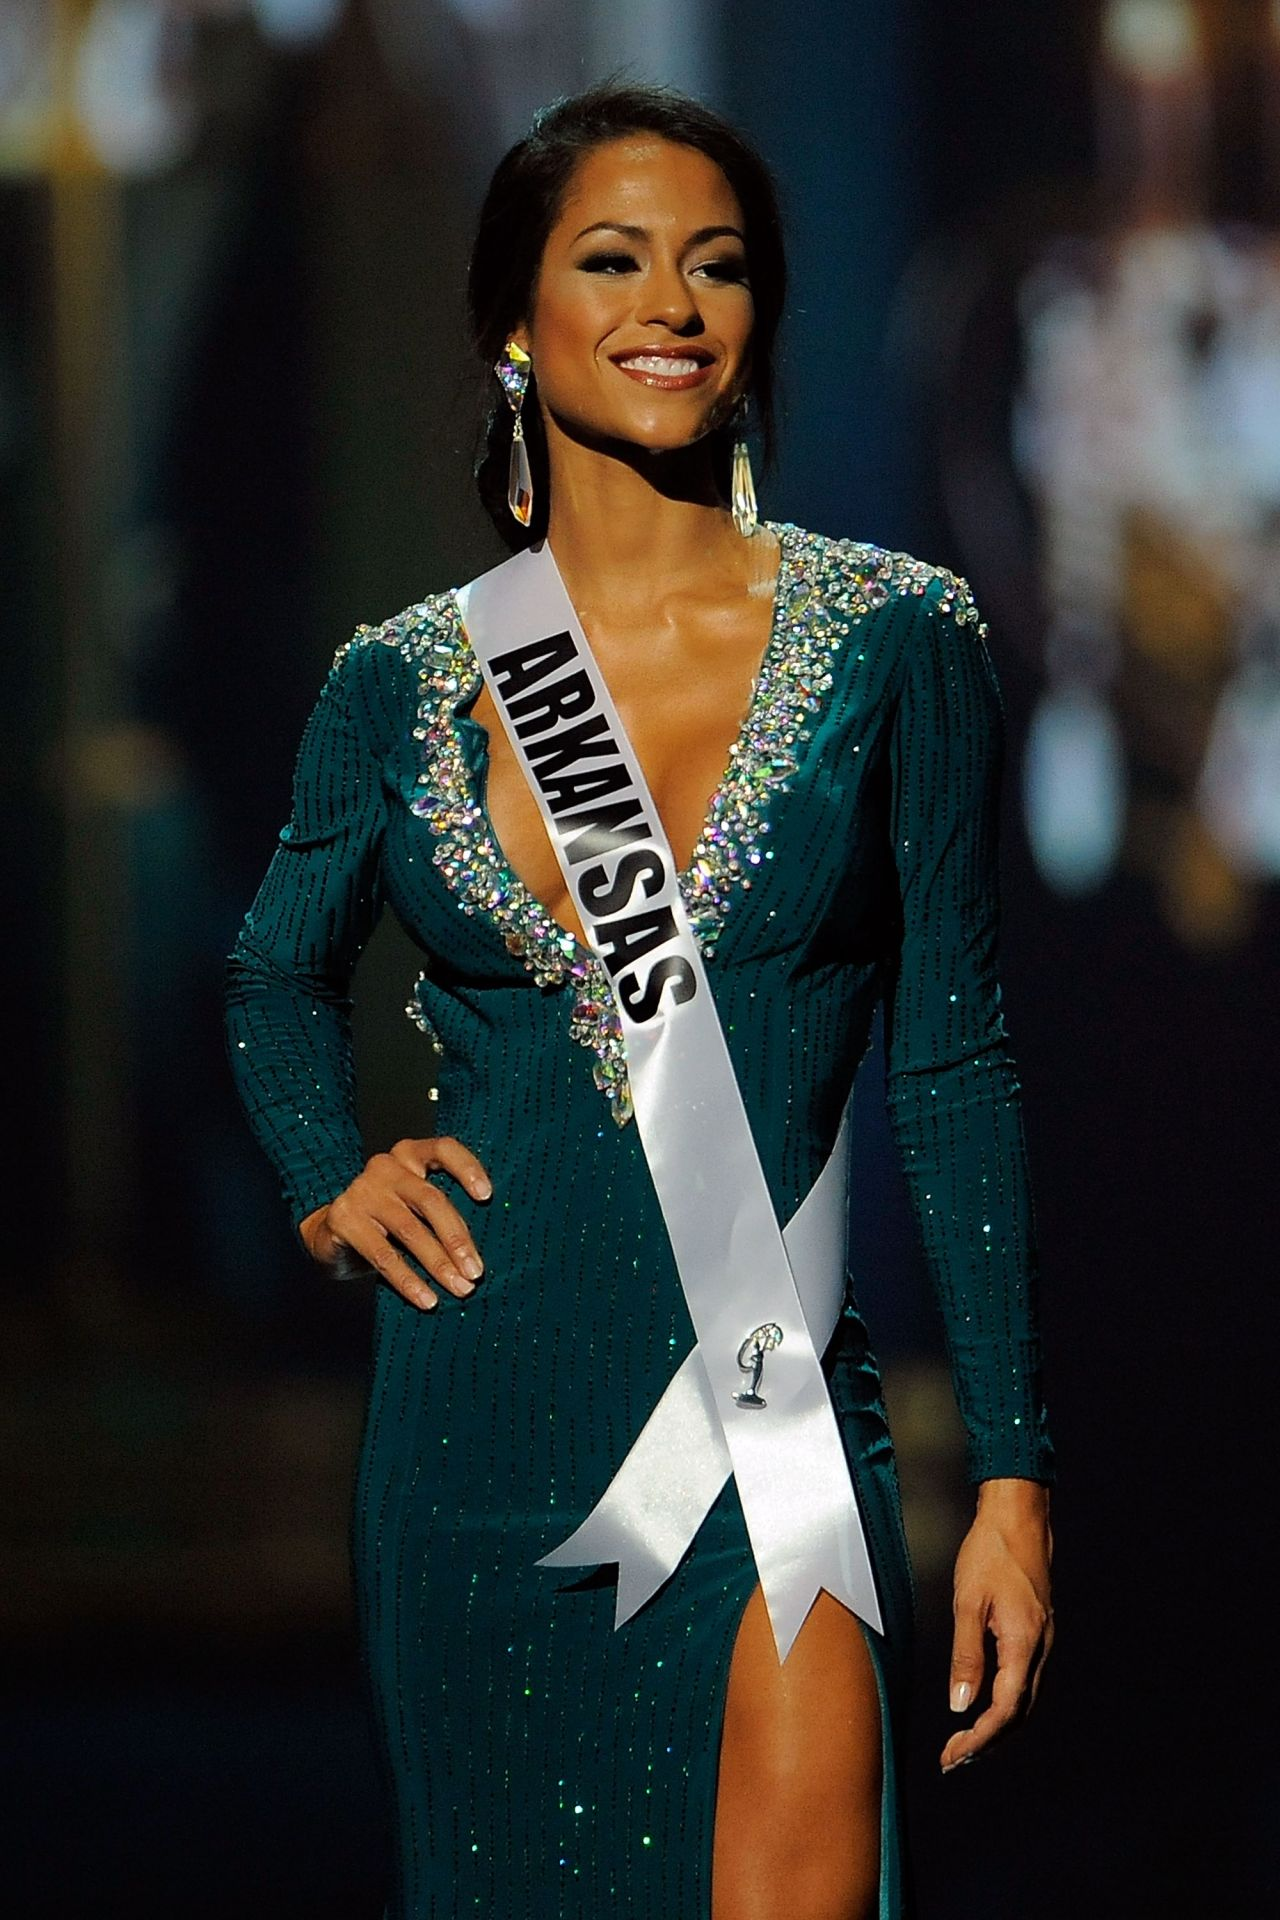 Helen Wisner (Arkansas) - Miss USA Preliminary Competition - June 2014